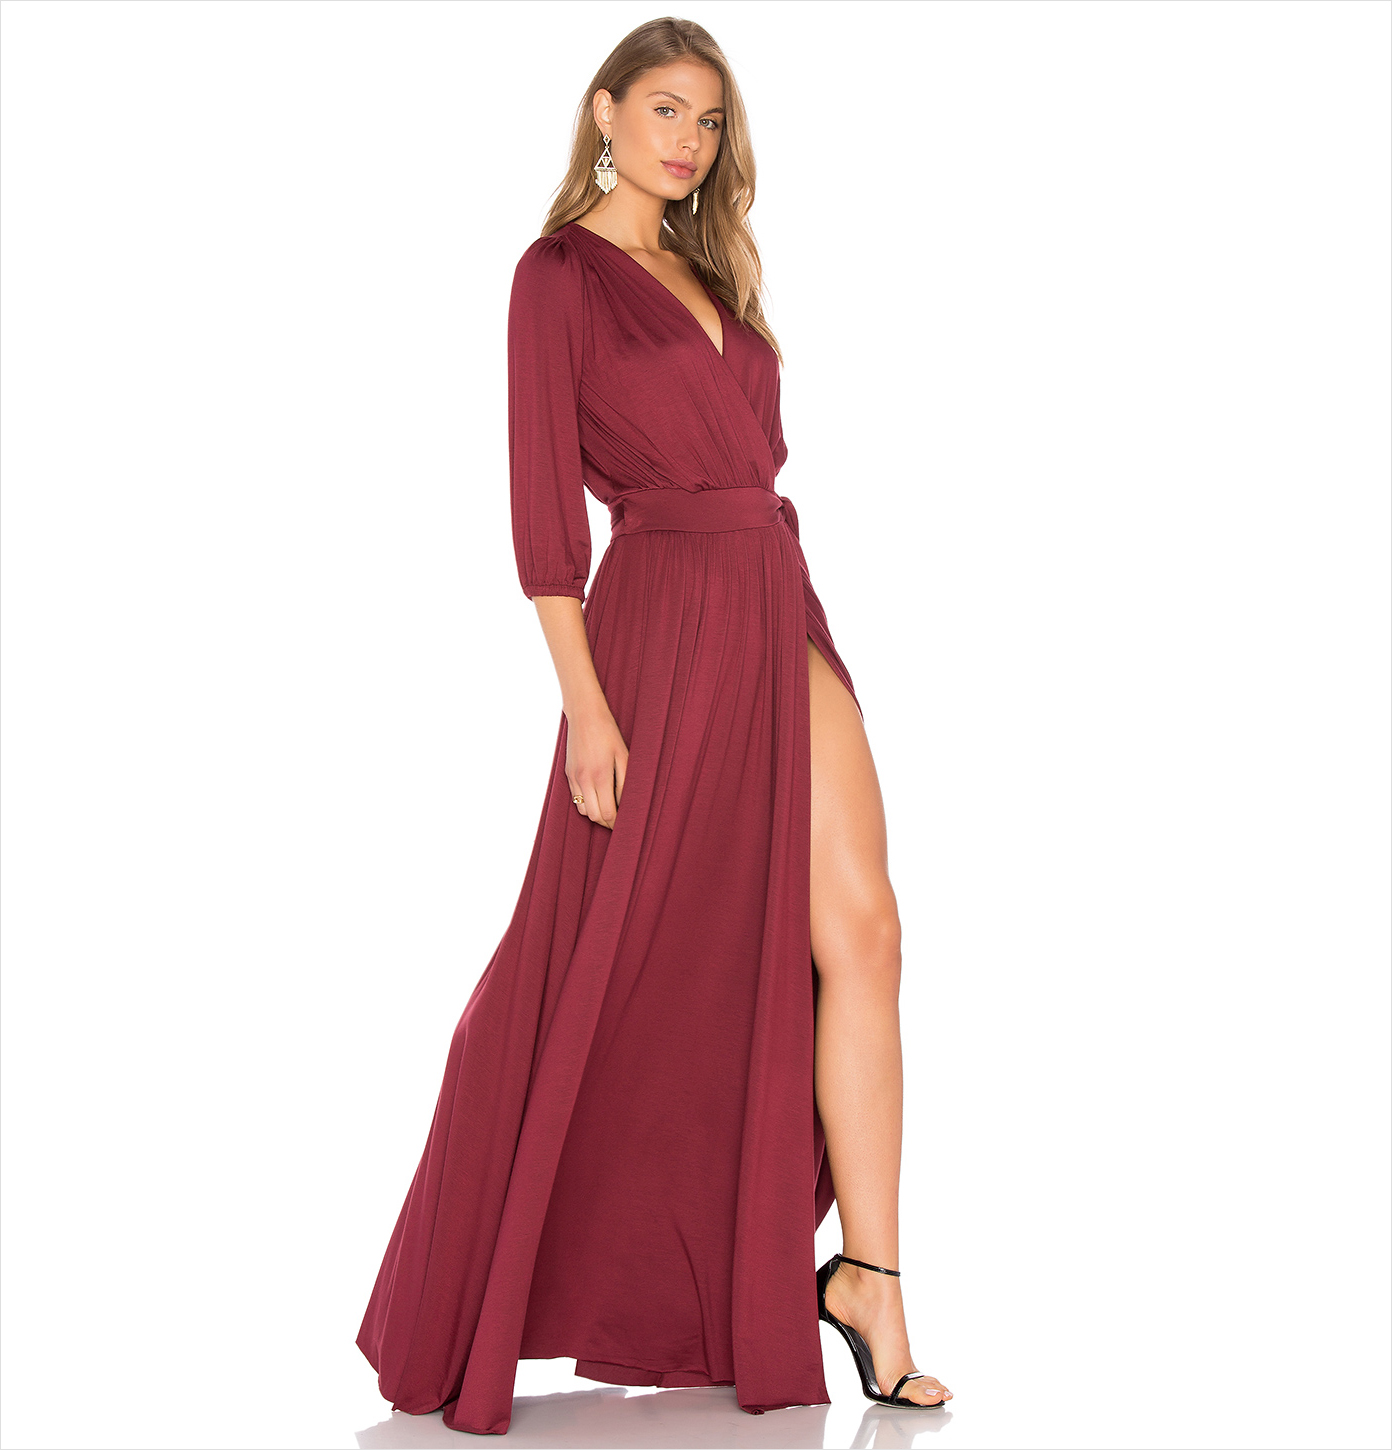 Wedding guest dress ideas long sleeve dresses inside for Winter wedding guest dresses